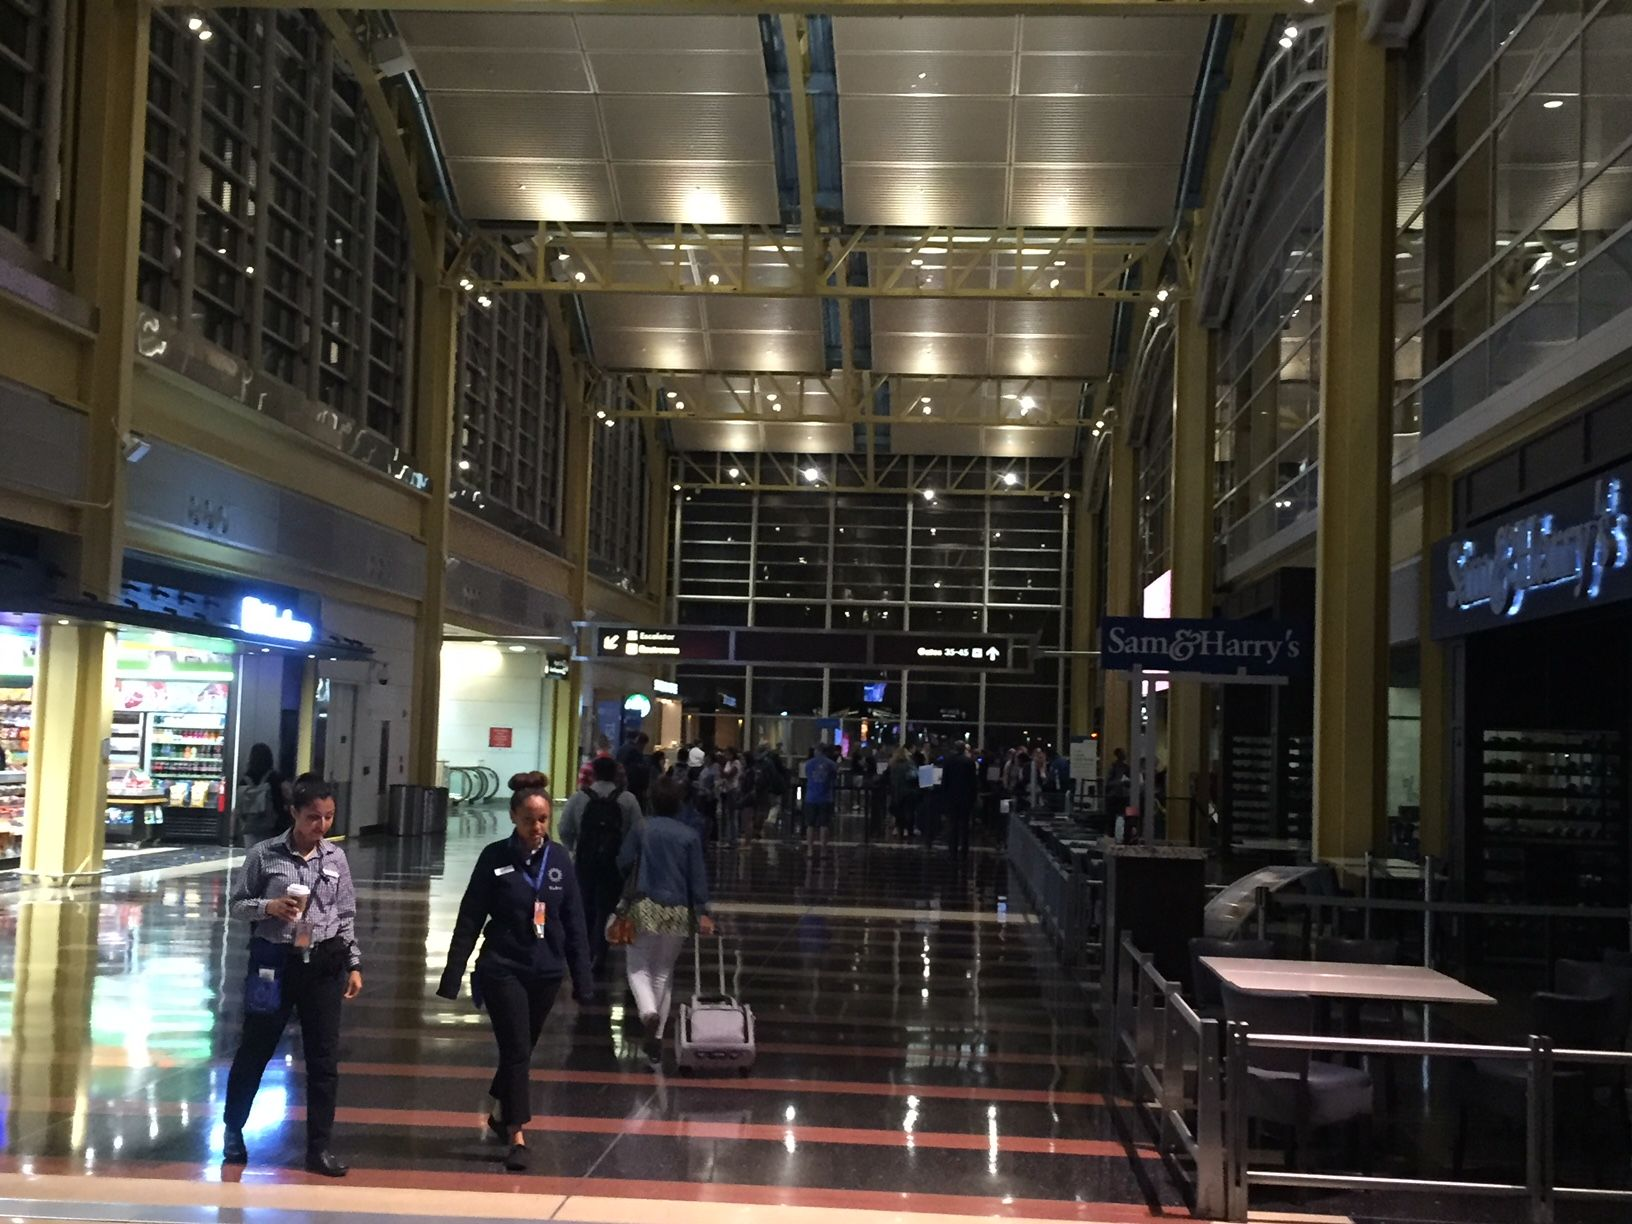 The lights were back on at Reagan airport on Thursday morning. (WTOP/John Domen)